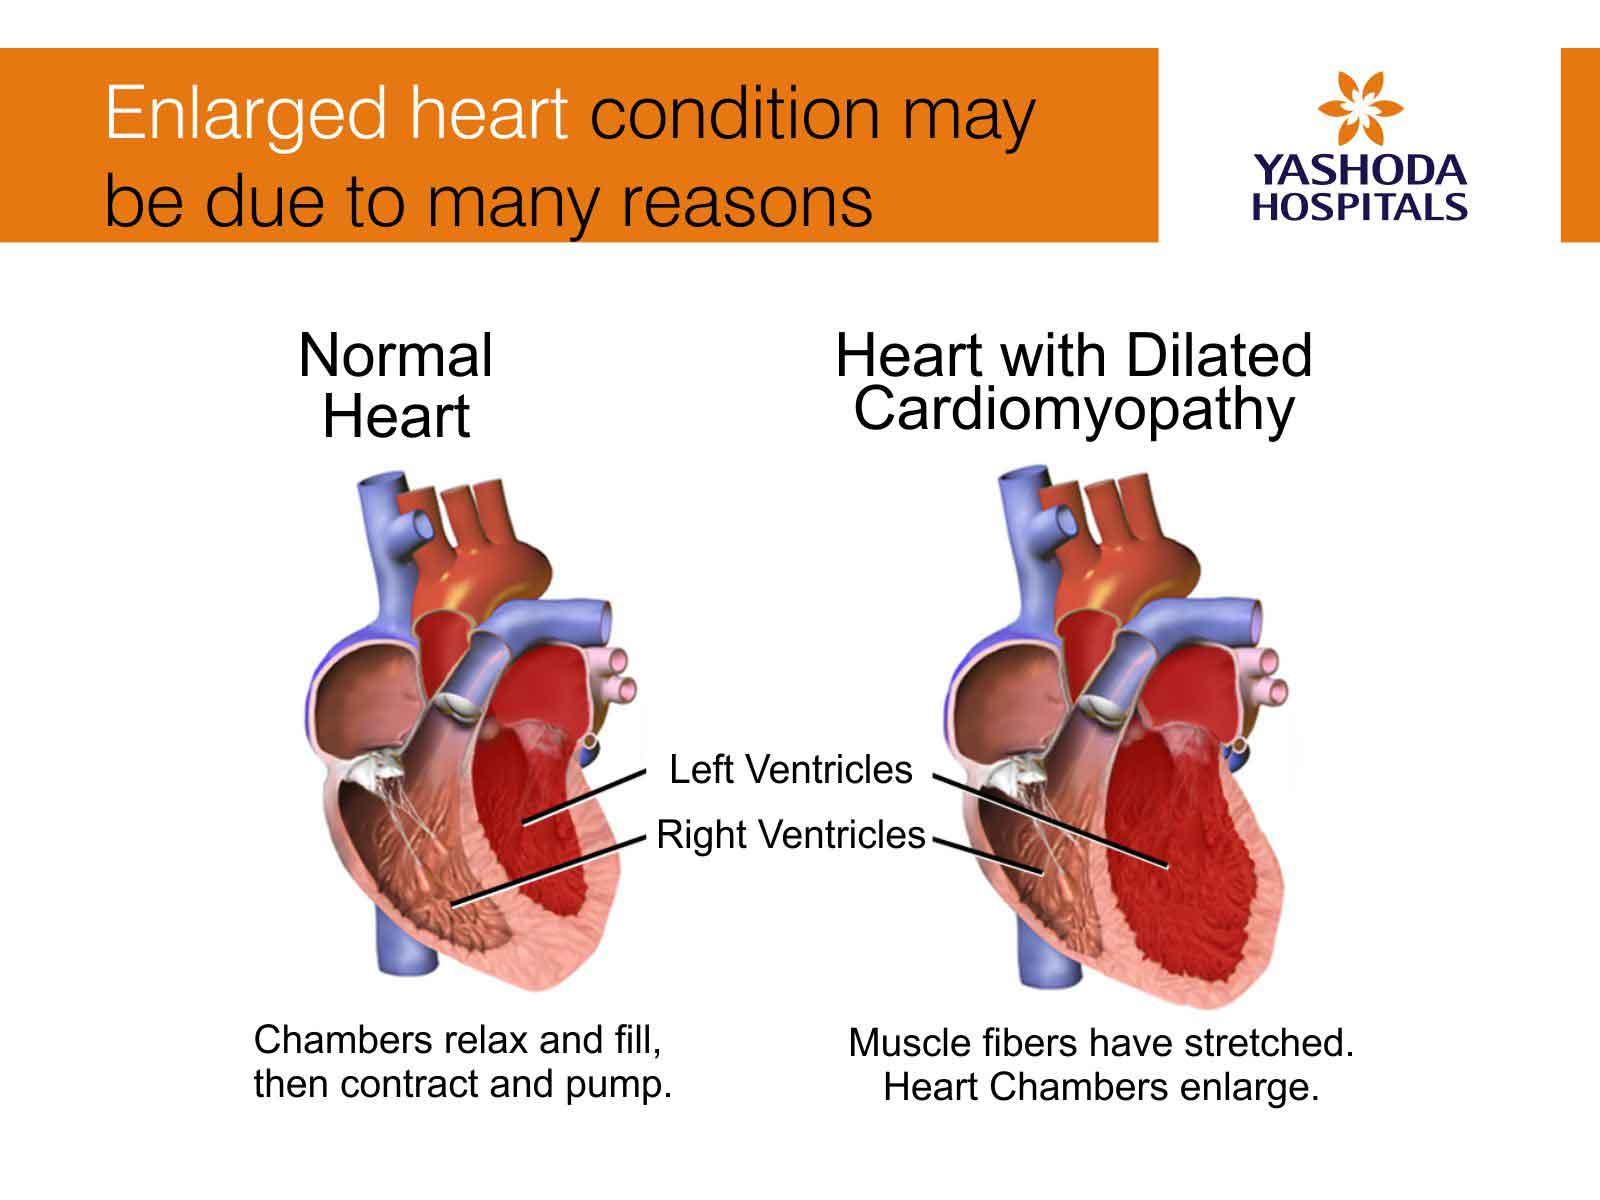 Heart: Major Causes and Reasons for Enlarged heart condition